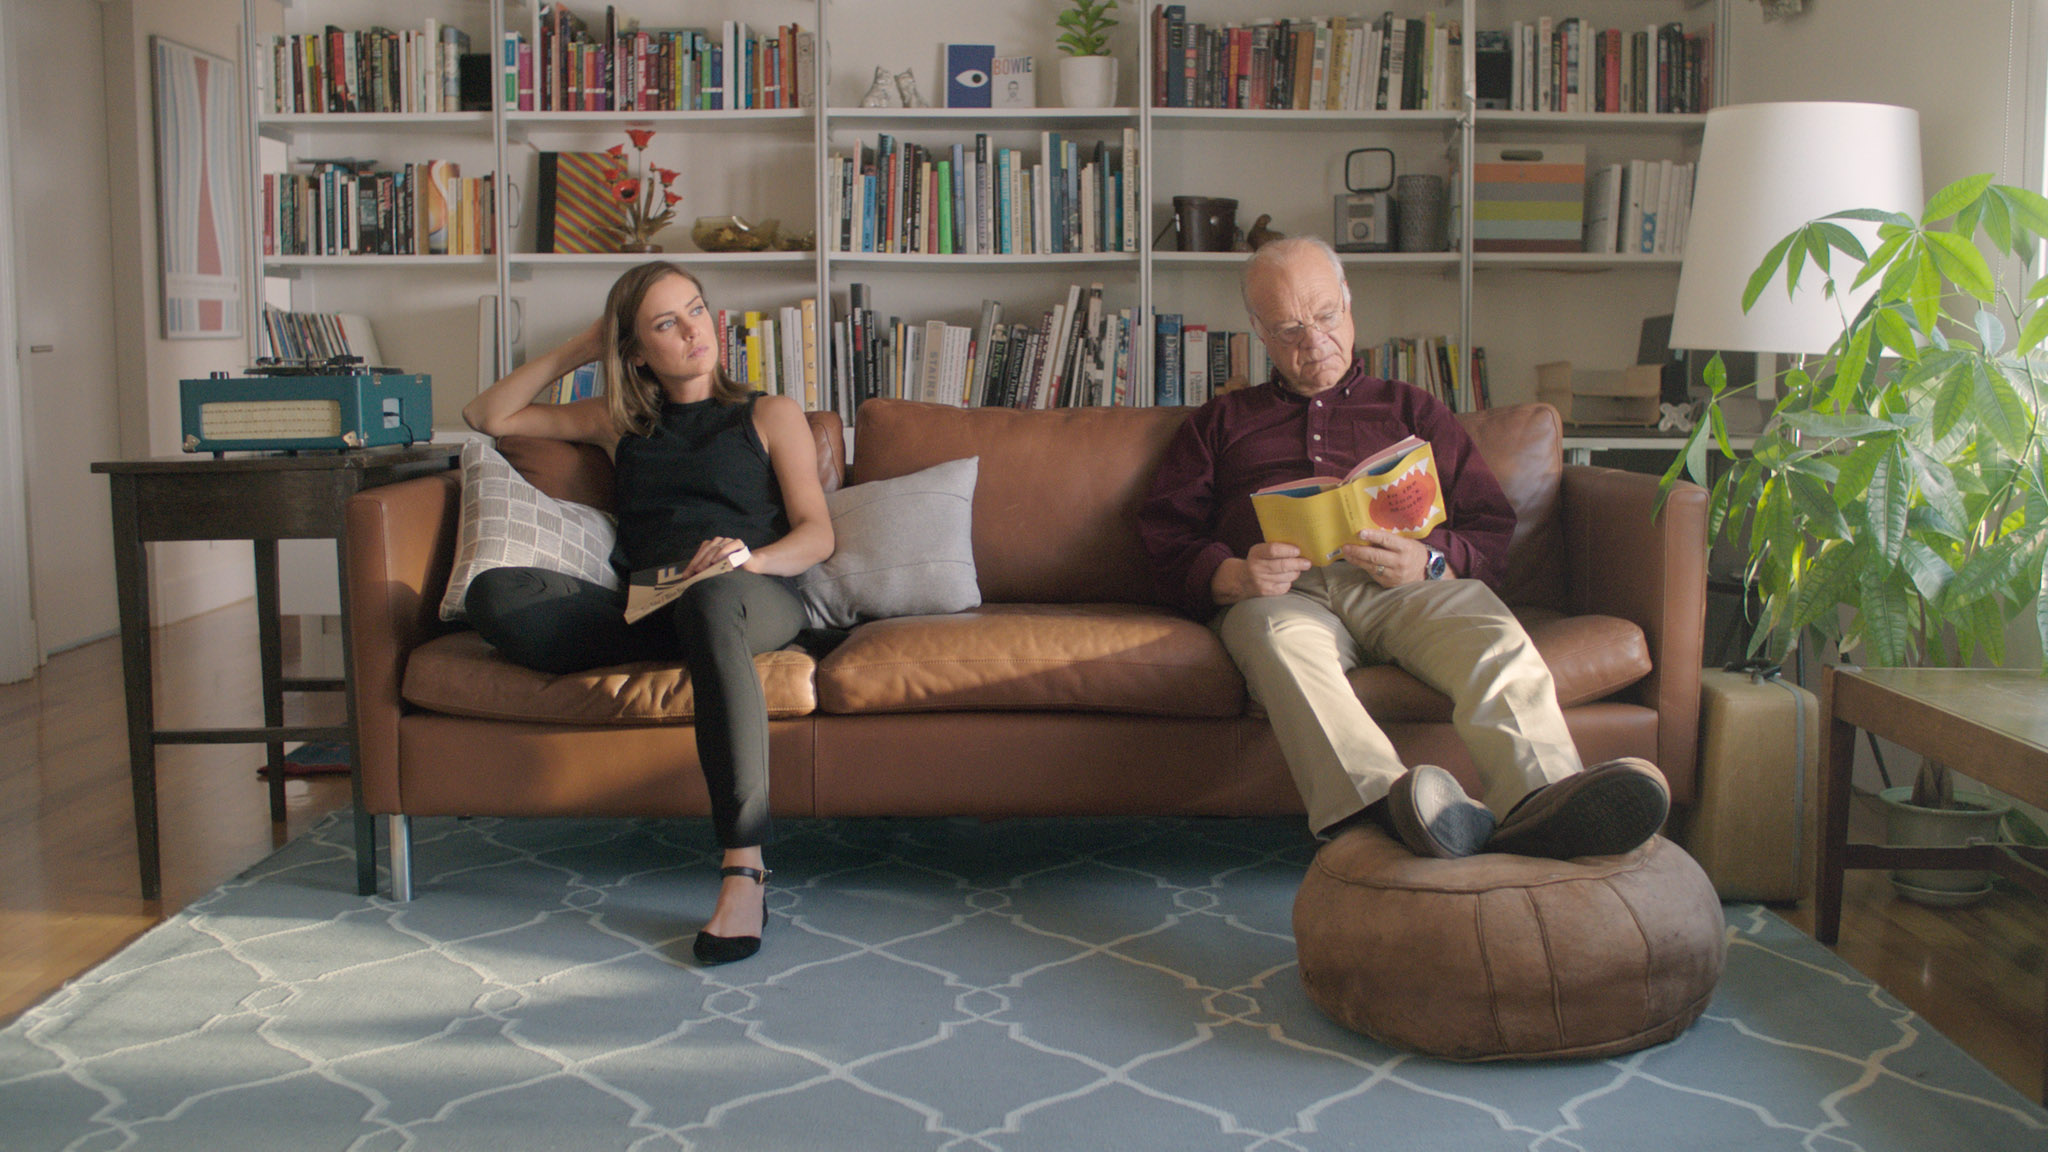 Alice & Joel on the couch. Youth, a short film coming in 2016. Starring Jessica Stroup and George Maguire, directed by Brett Marty. A sci-fi film about growing old in a world of perpetual youth.